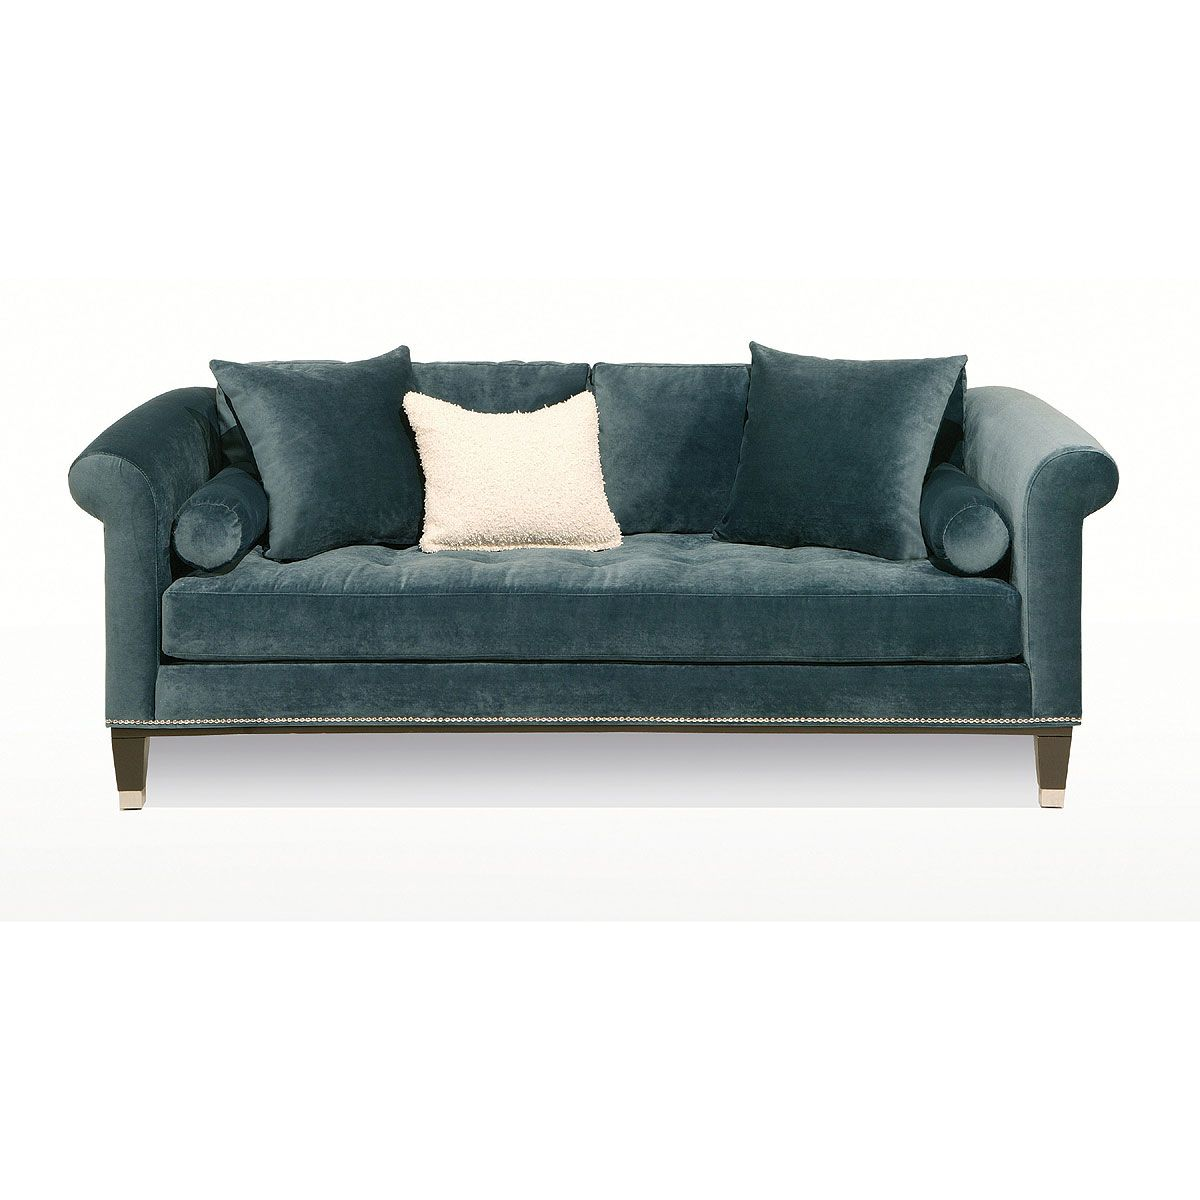 Attractive Beautiful Teal Sofa On Sale At RC Willey. Sadly, Dh Doesnu0027t Like